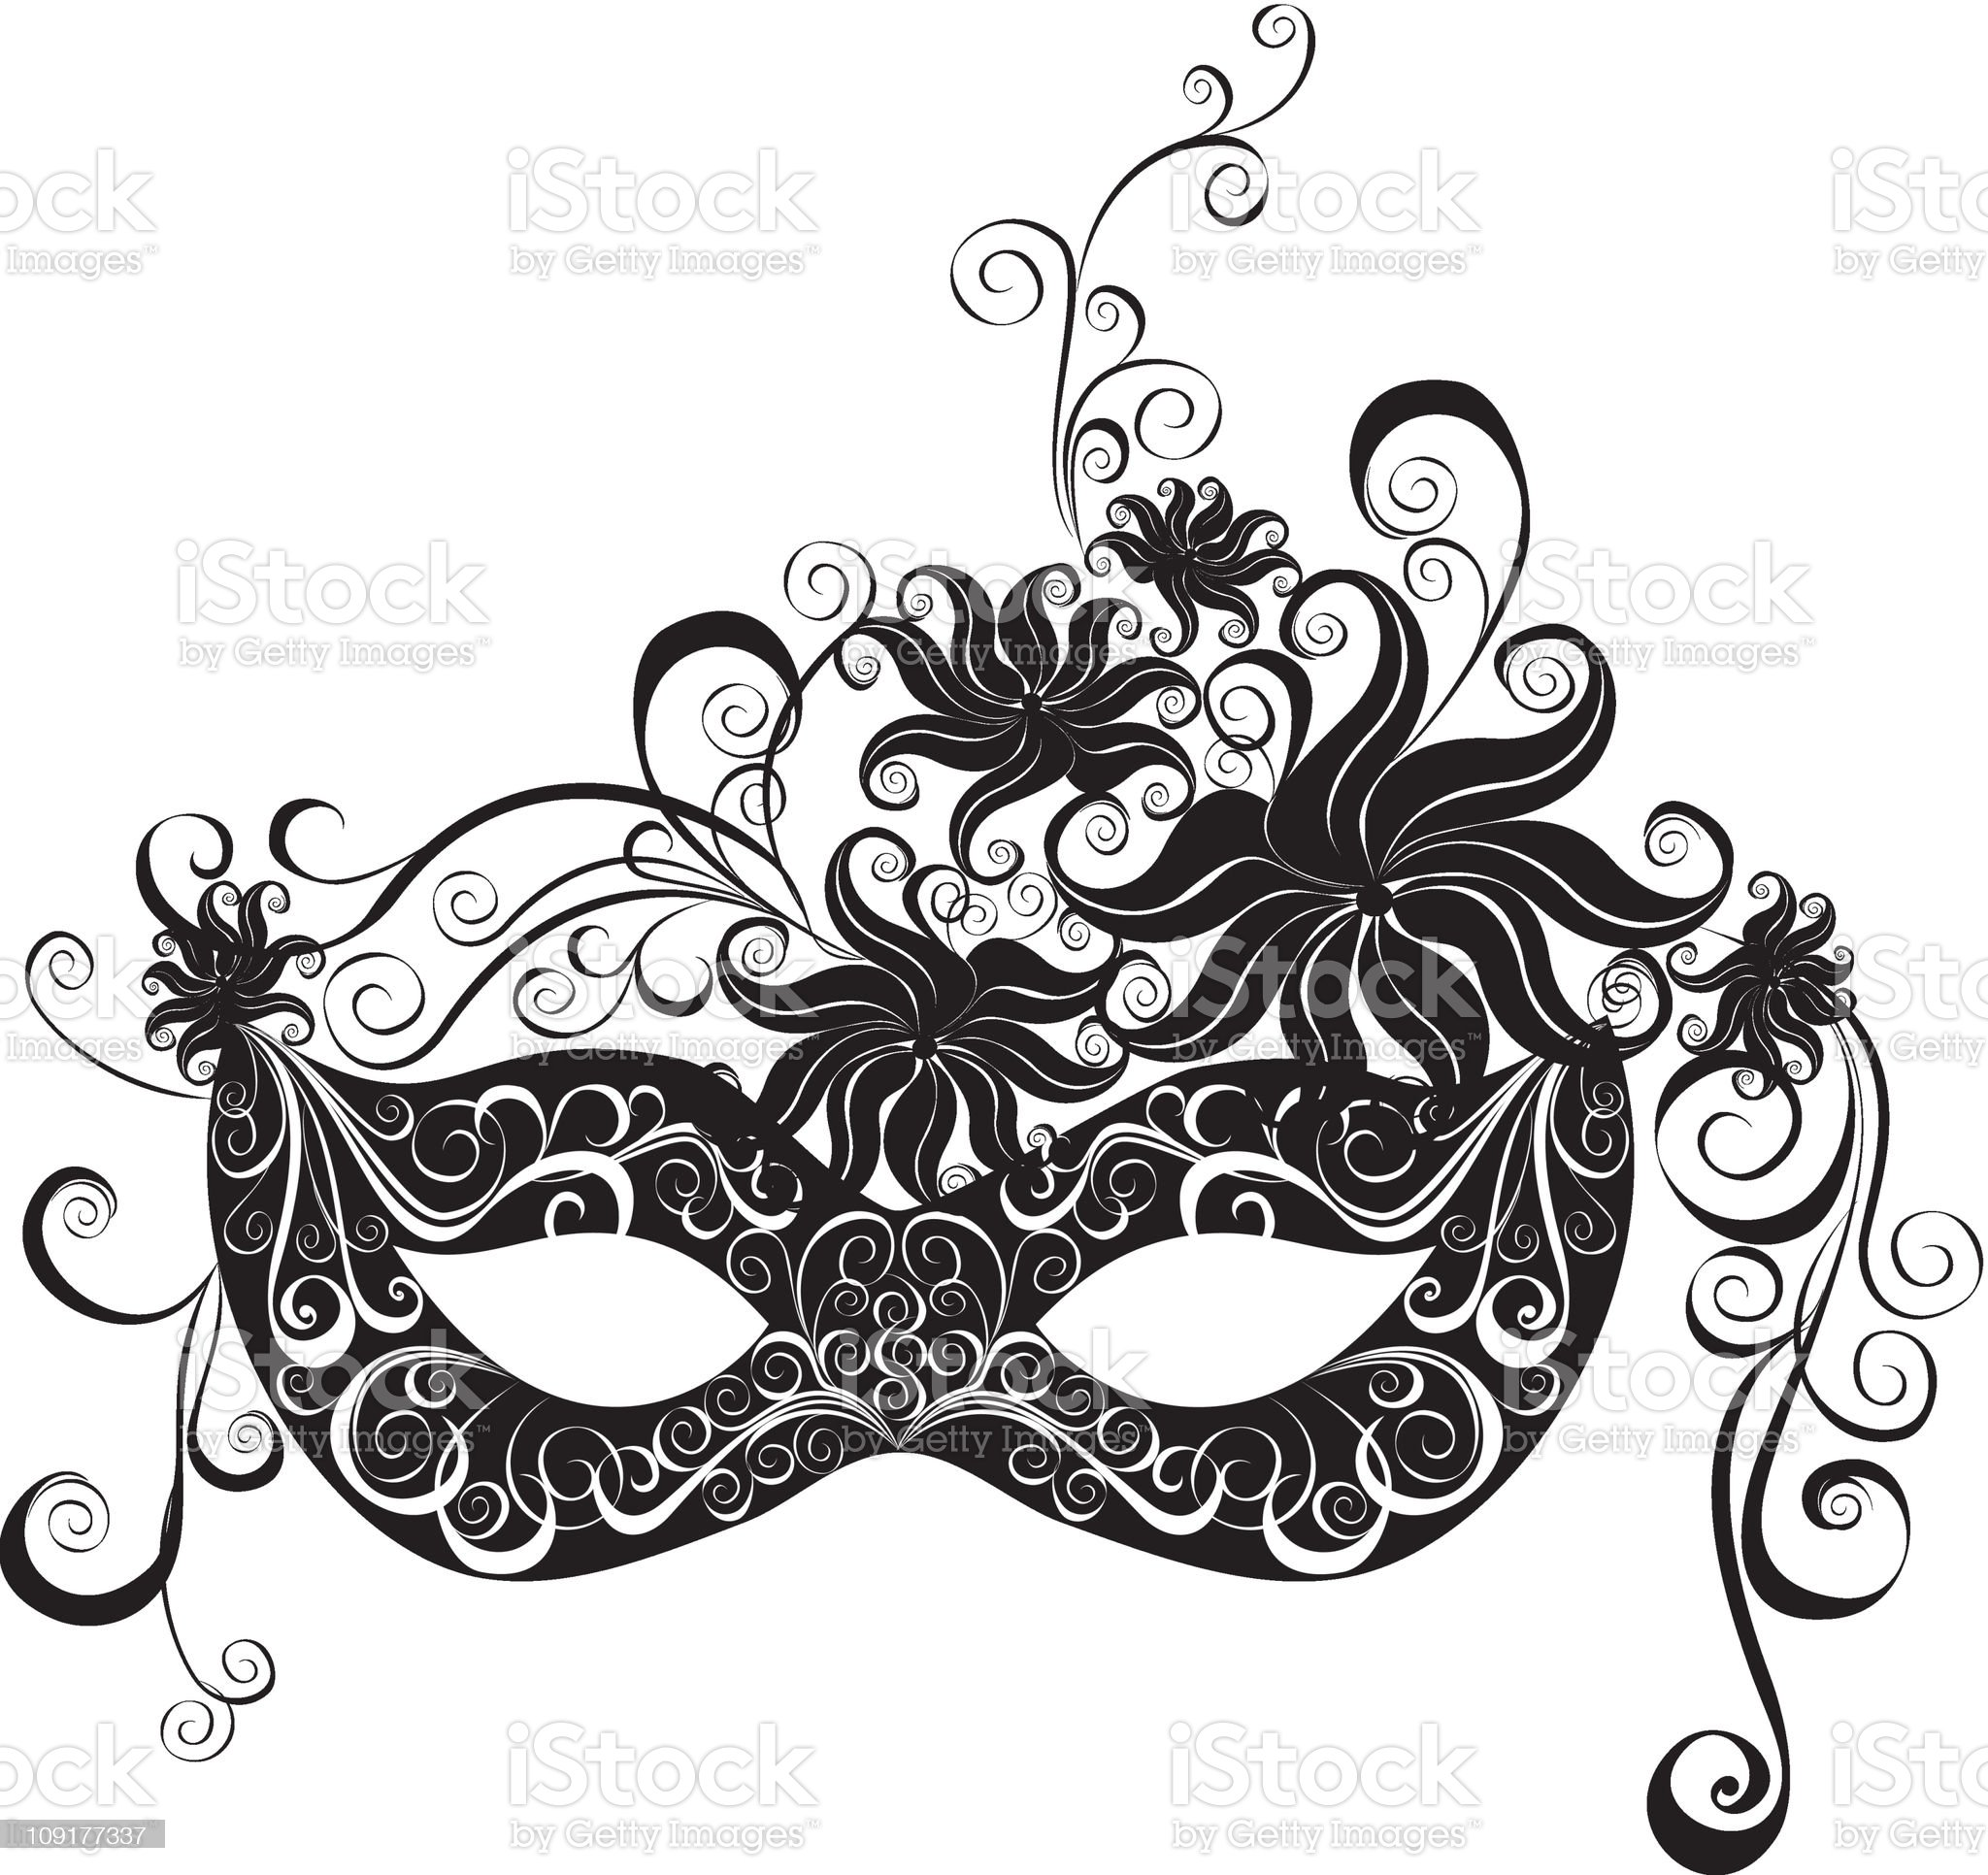 A masquerade mask in black and white royalty-free stock vector art